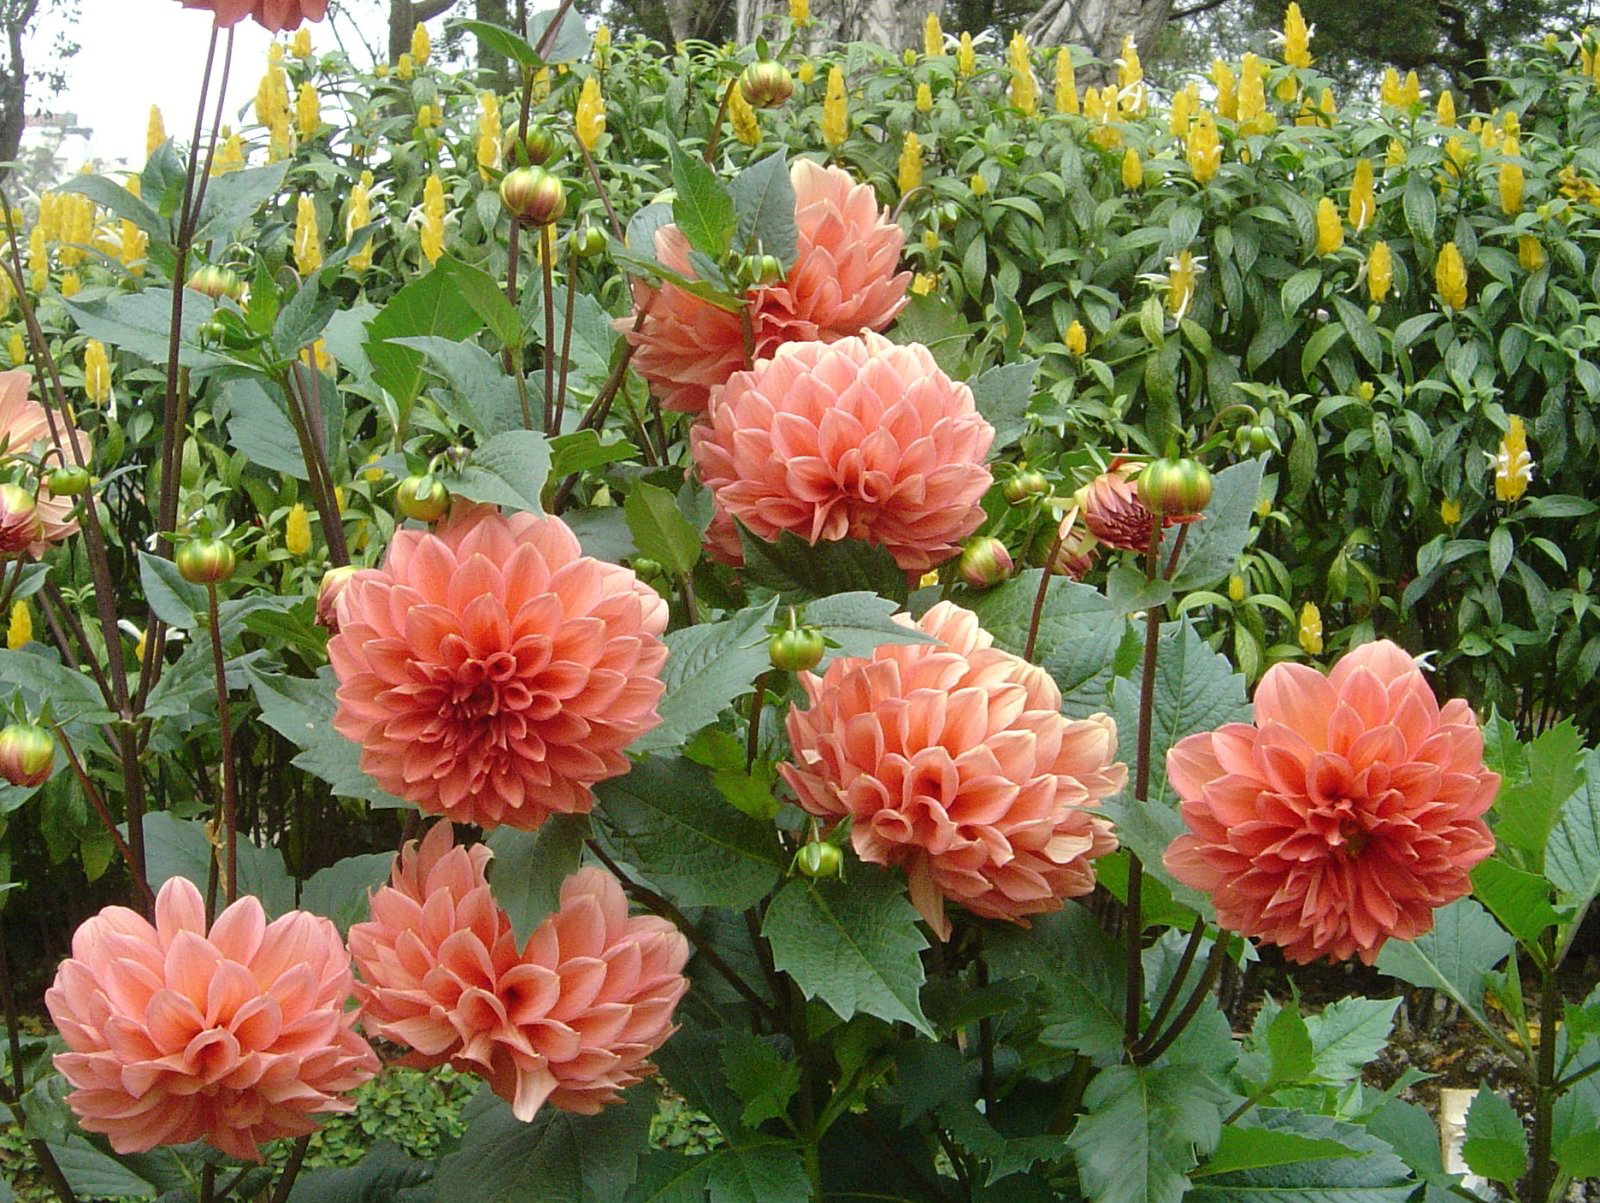 Dahlia Facts And Medicinal Uses